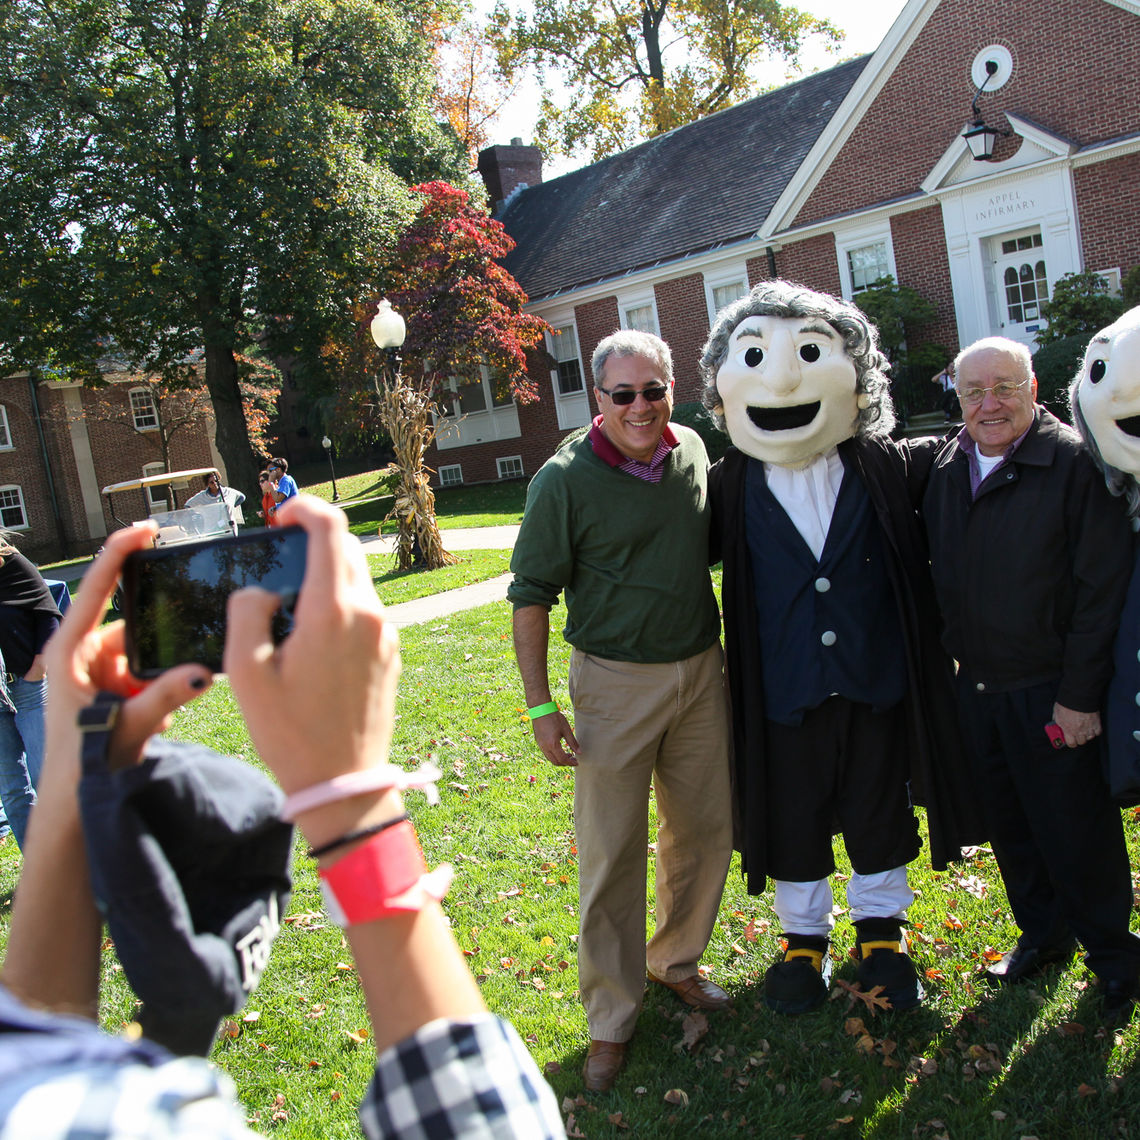 Alumni are eager to get their photos taken with College mascots Ben and John, who spent the weekend wandering campus, greeting people and giving out the occasional hug.